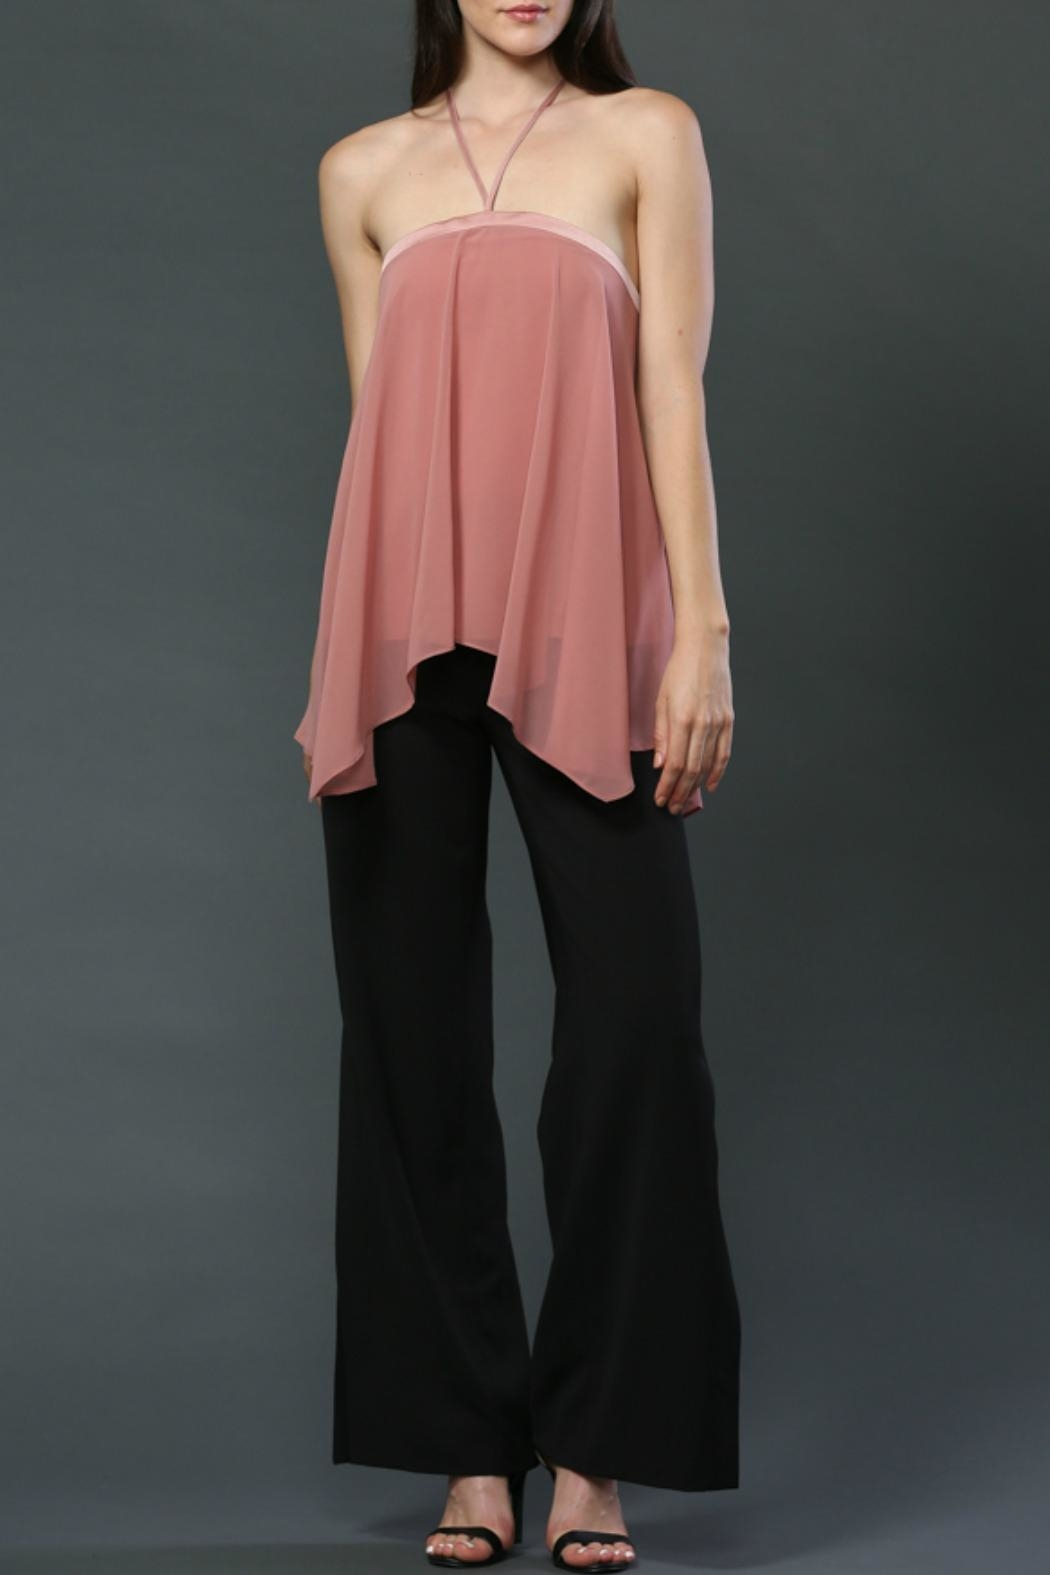 FATE by LFD Halter Neck-Tie Top - Main Image